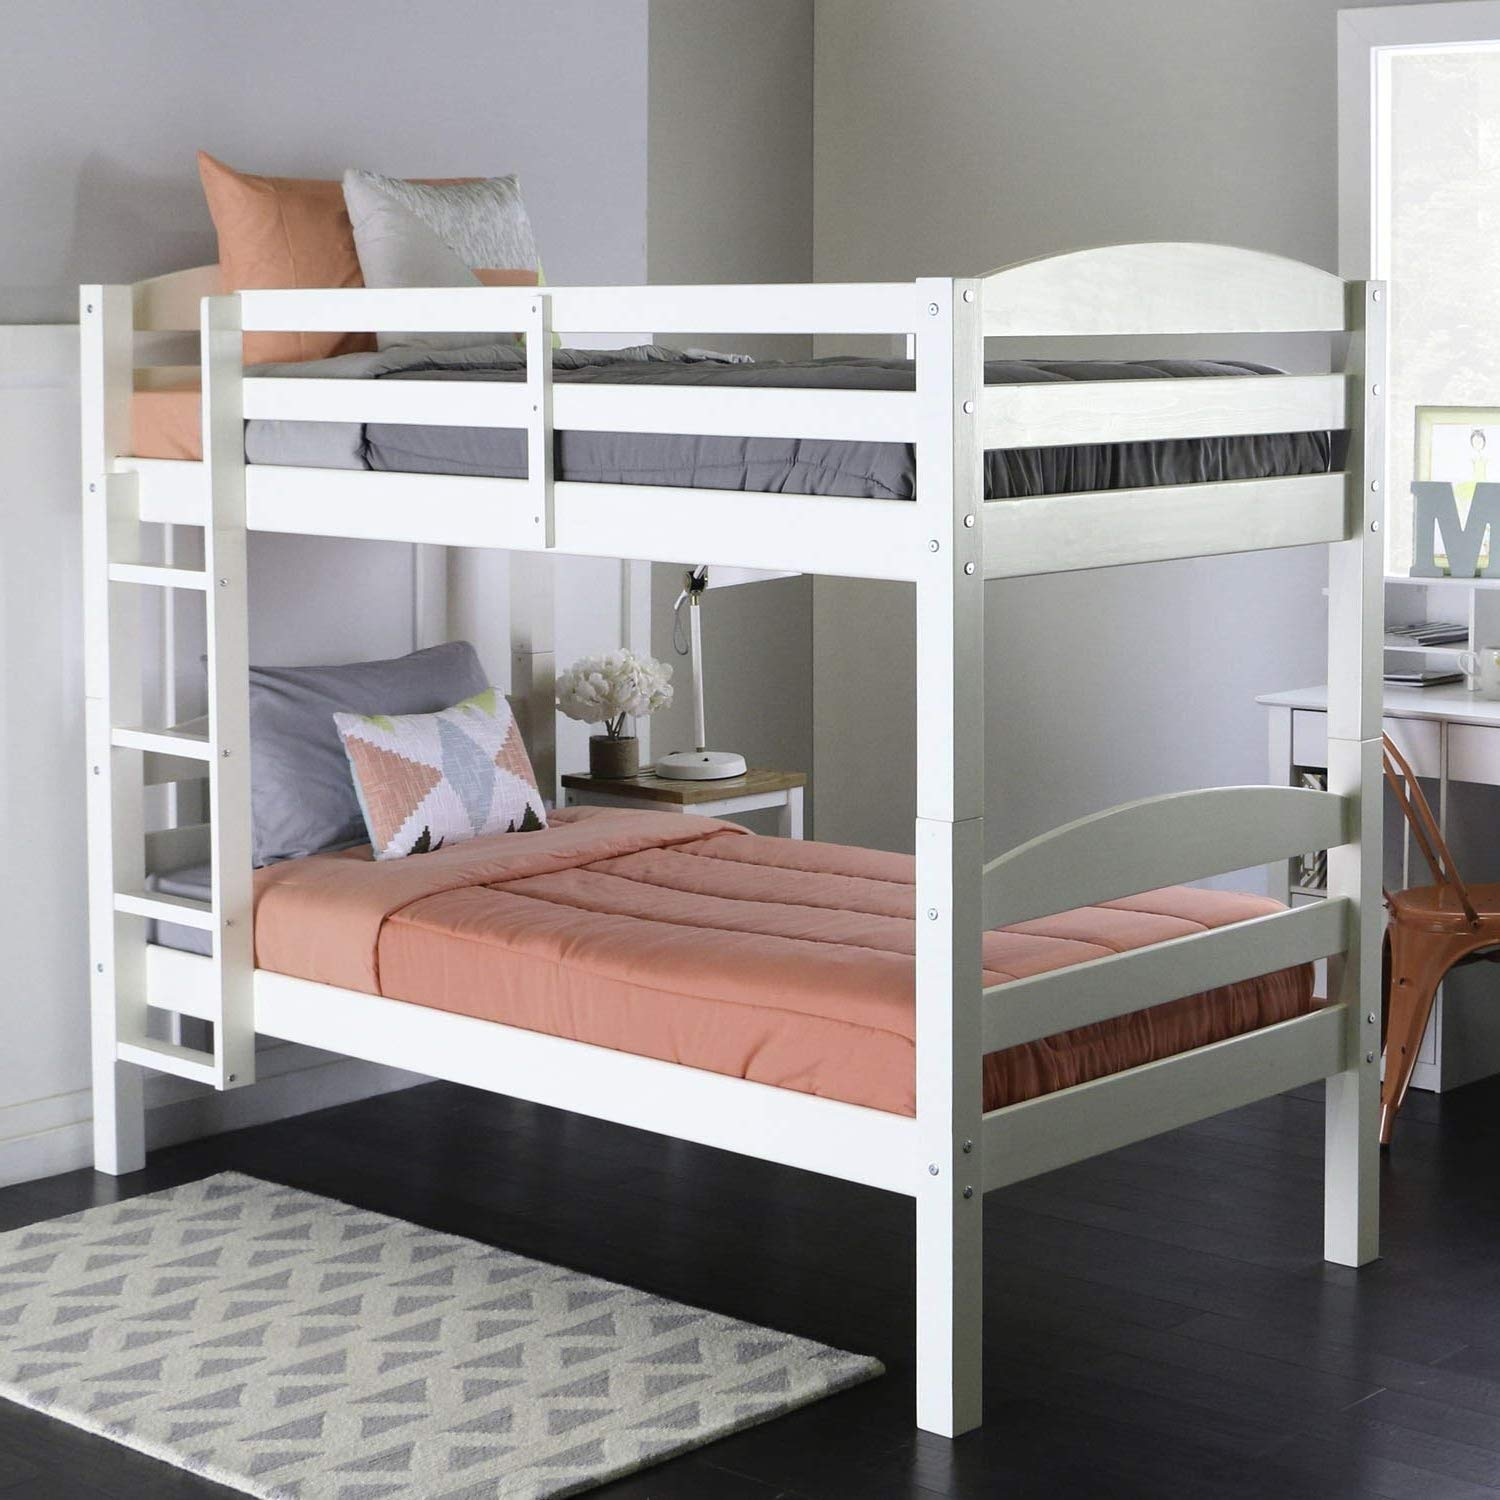 Bunk Beds for Kids Toddler Twin Wood White Your Child Will Sleep in Style and Great Solution for Your Space Saving Needs by HomeTeks